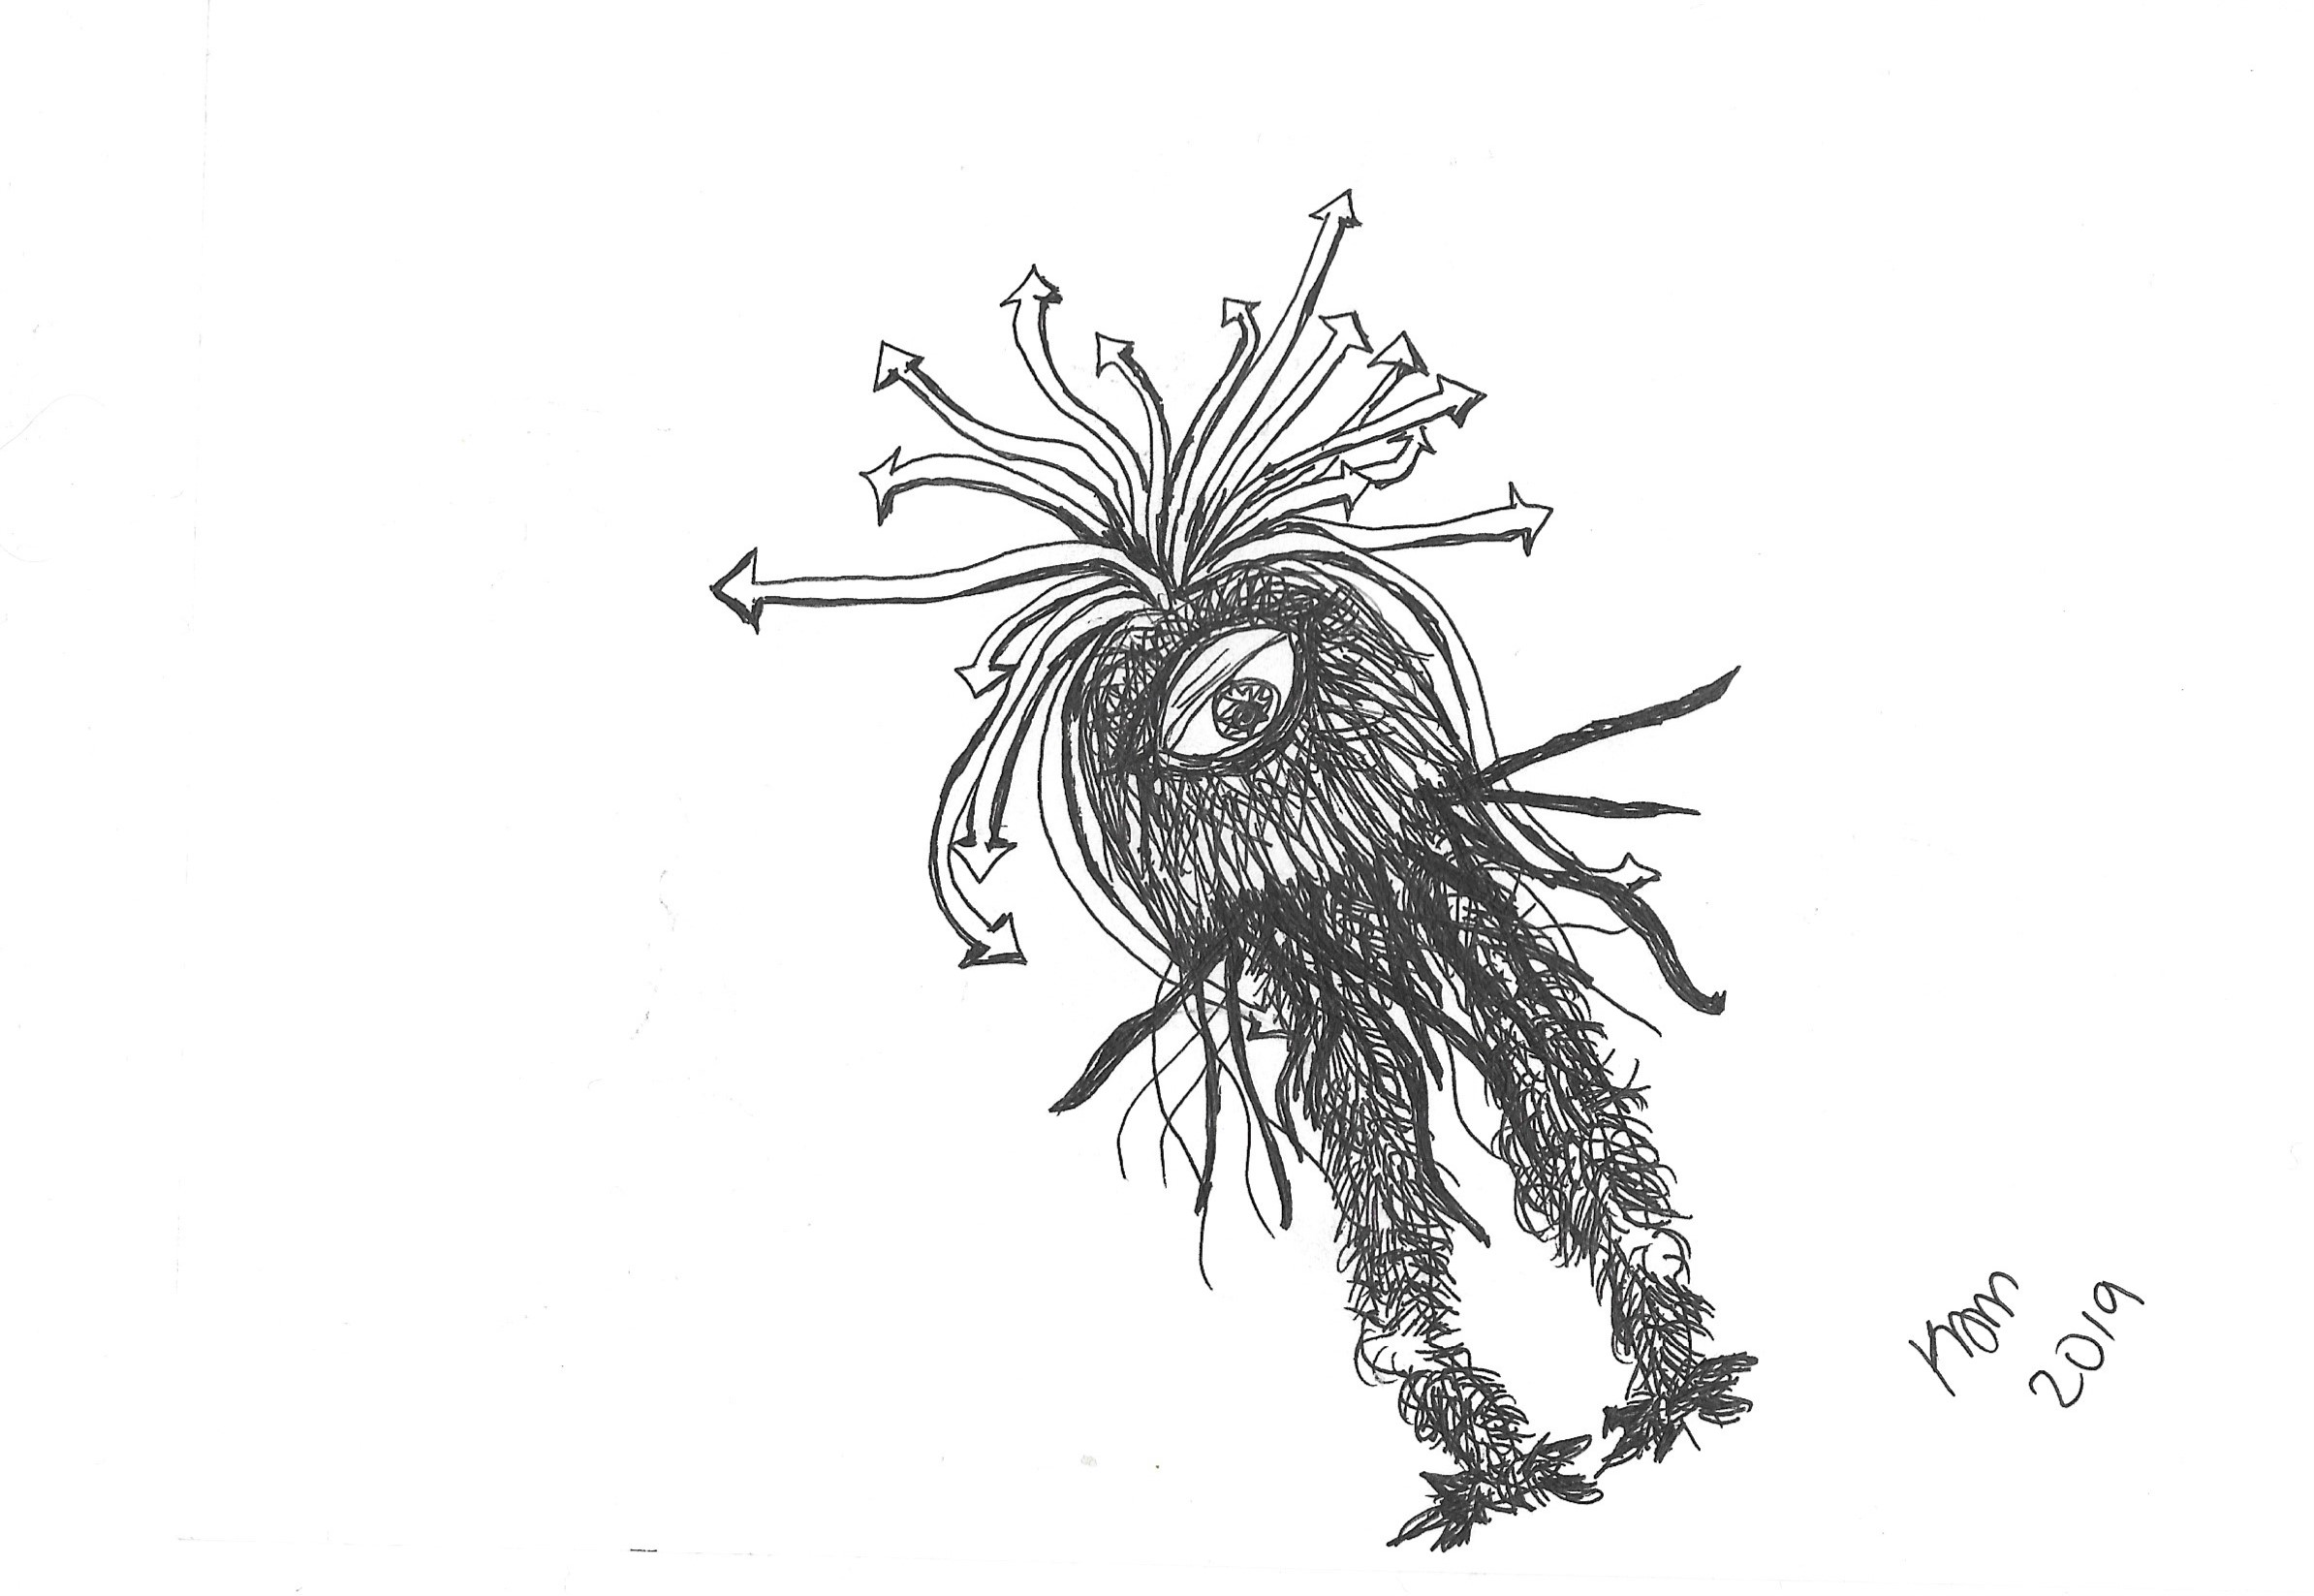 a bipedal cyclopian monster with hair tendrils in the shape of arrows on its head sticking out every which way. Covered in wiry little hairs except for its two knobbly knees.